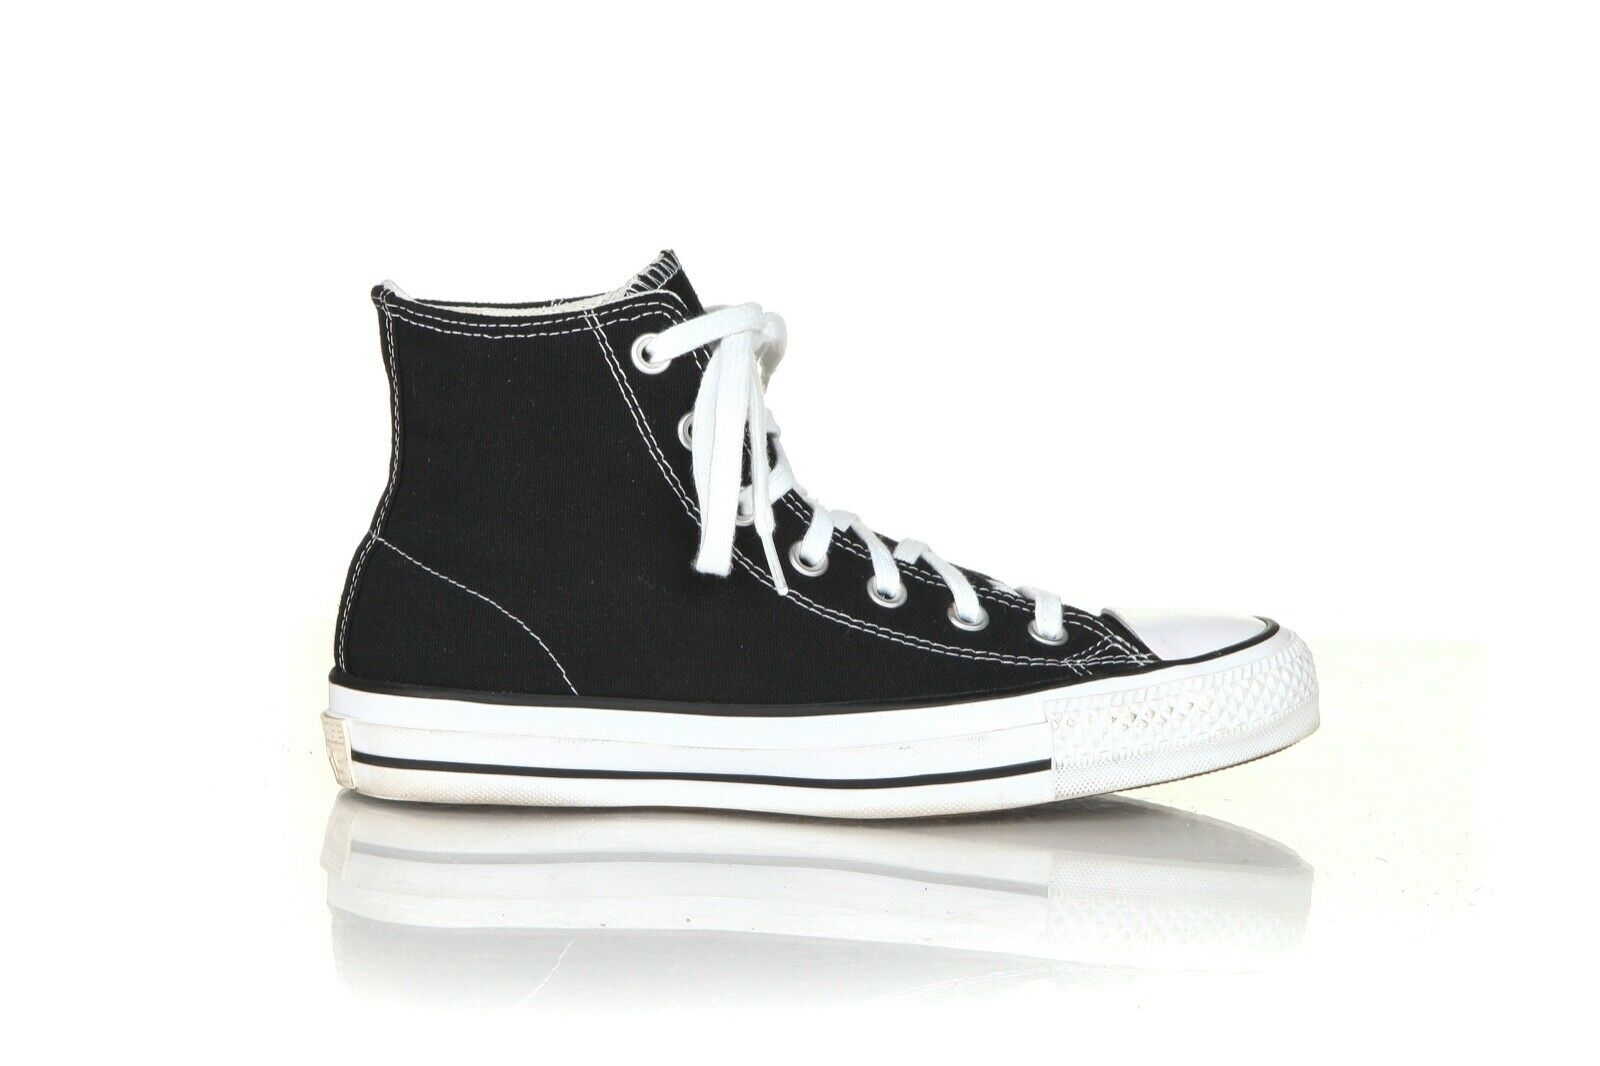 CONVERSE x CHUCK TAYLOR High-Top Sneakers Size 7.5